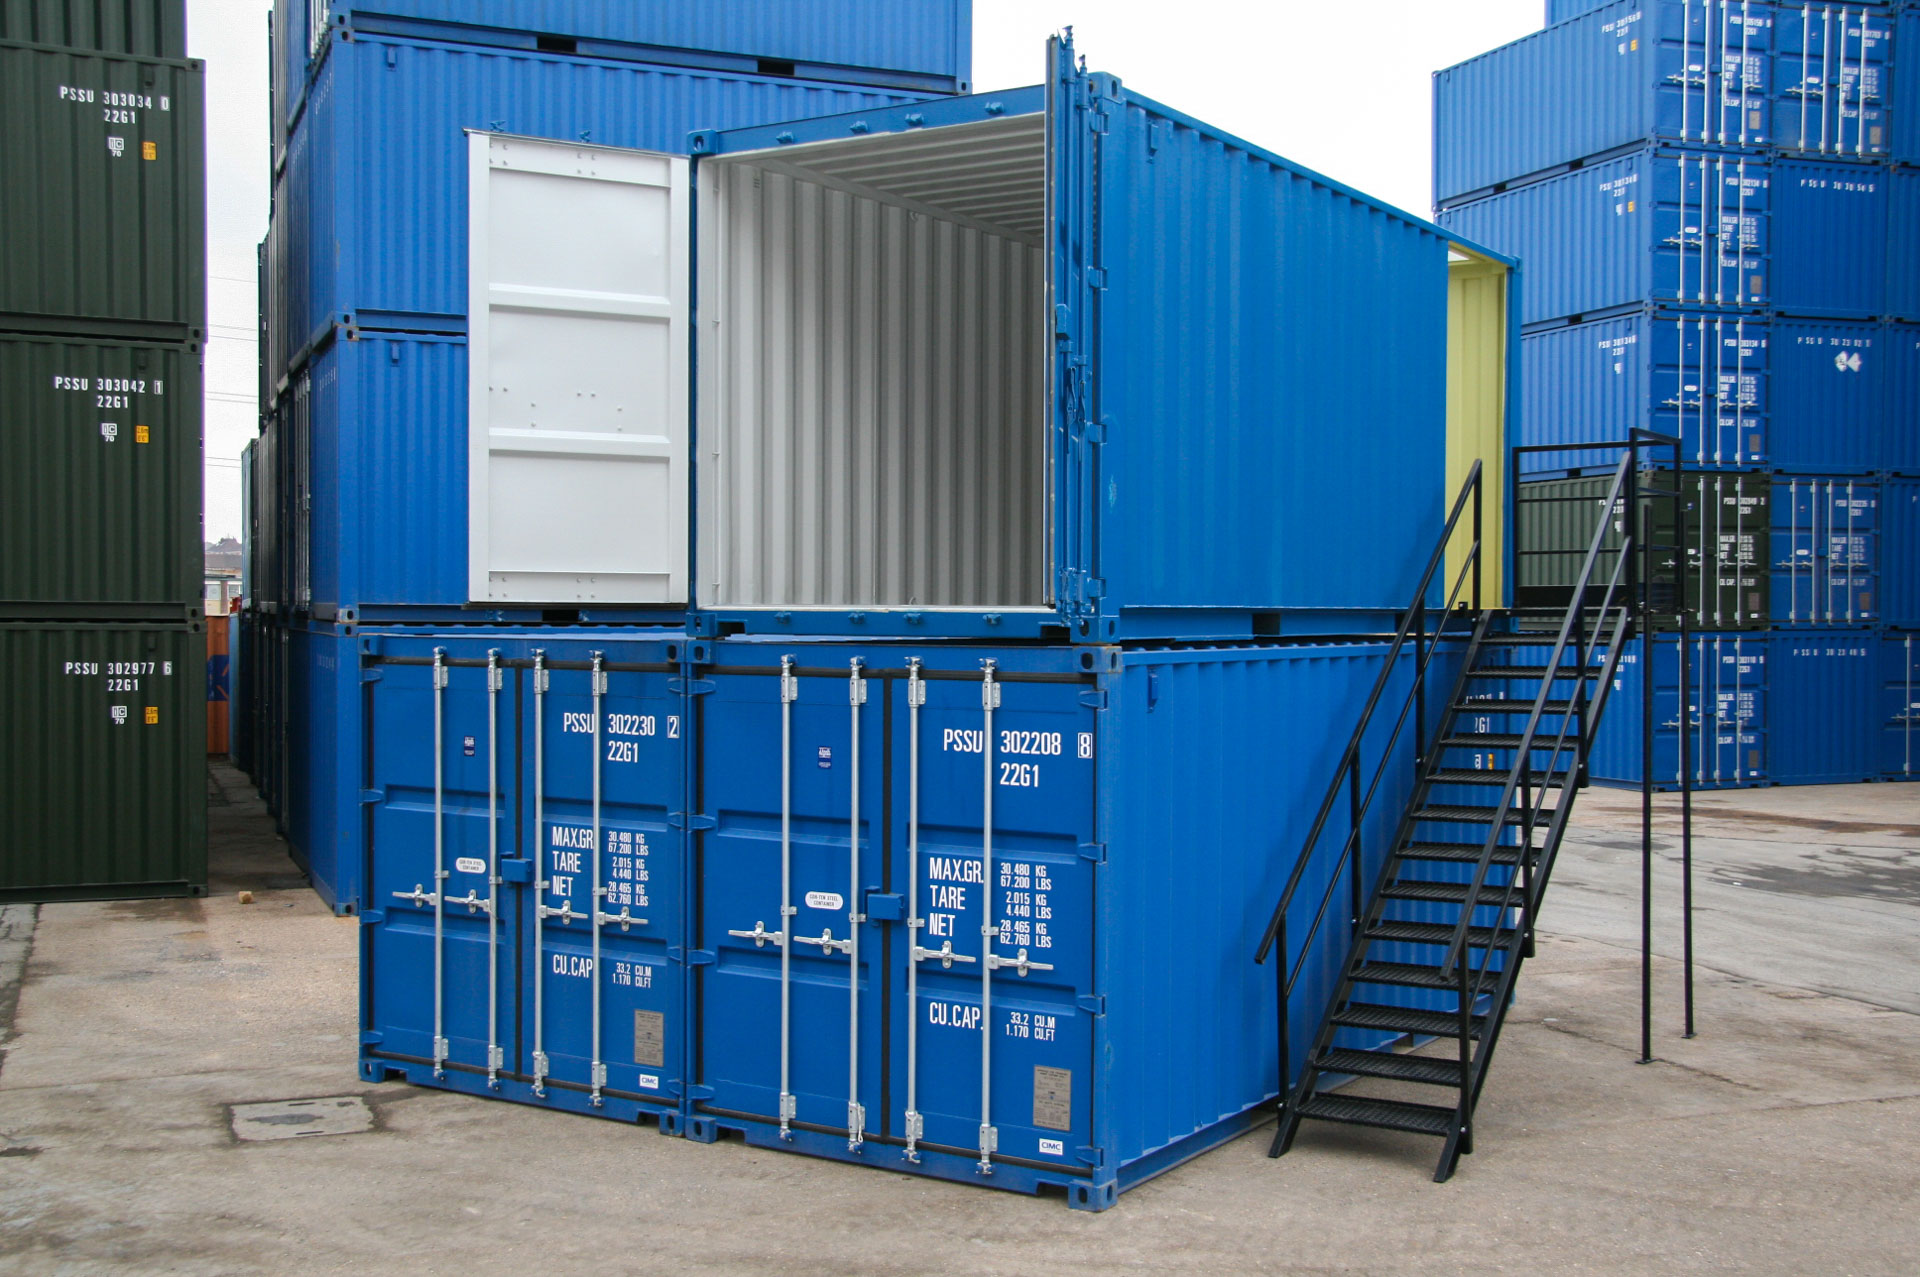 Shipping Containers for Self-storage sites